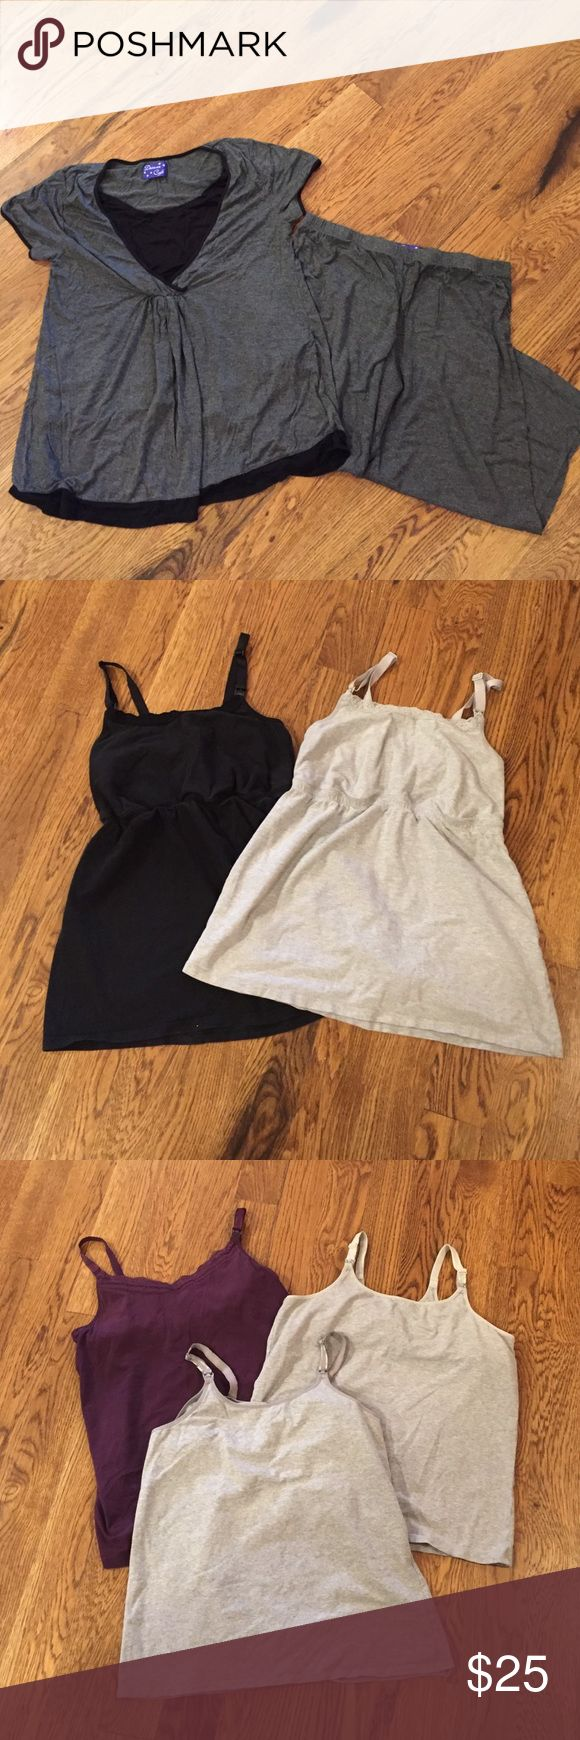 Nursing tops pajama set and lot of 5 nursing camis Black and gray nursing top pajamas with elastic waist Capri bottoms- size medium 8/10, fits more like a large. Worn only once. 5 nursing camis- all size large. All in great gently used condition. No stains or visible wear. Pet free/smoke free home. Intimates & Sleepwear